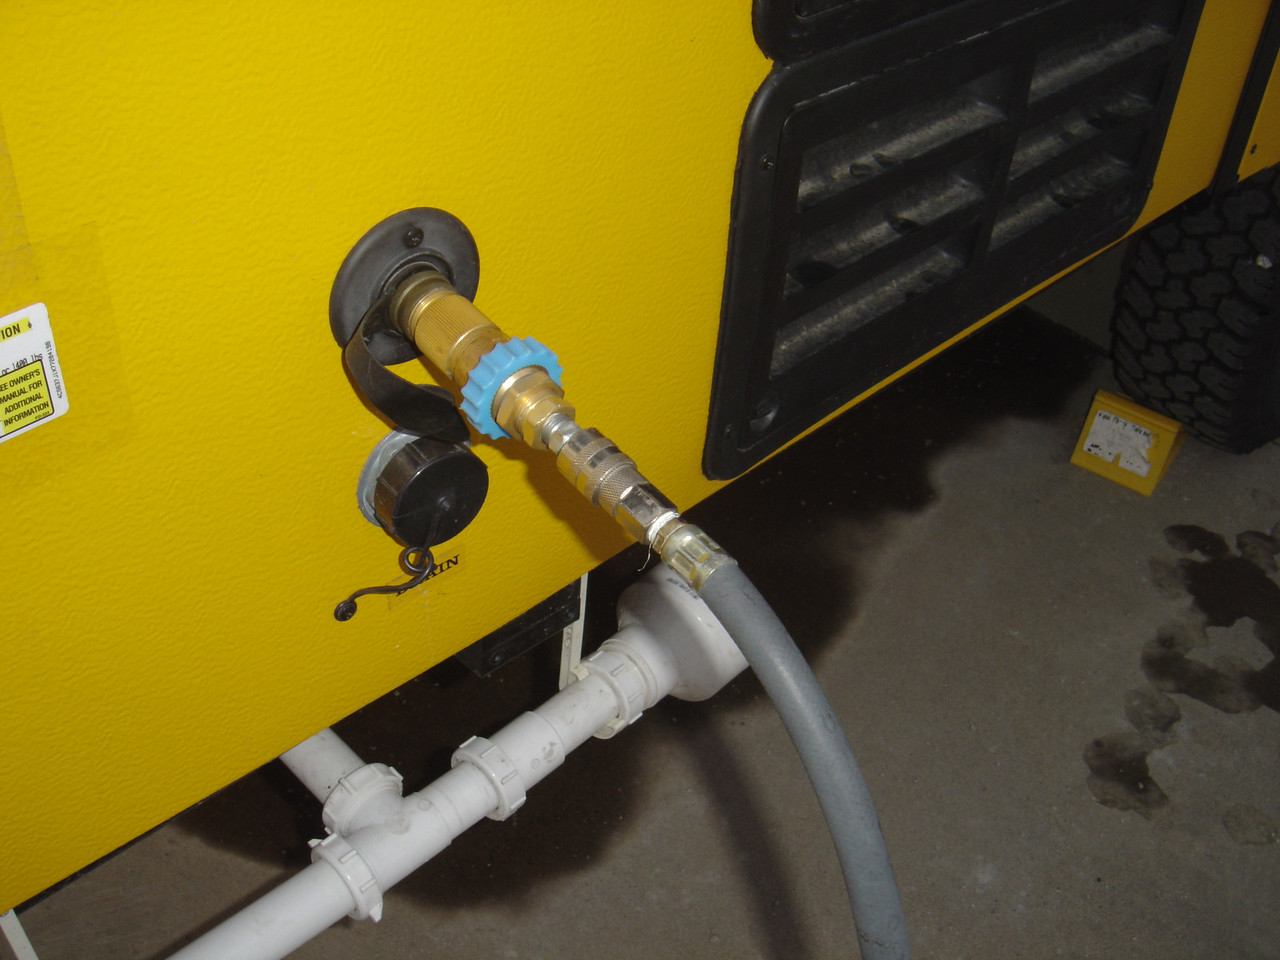 Home made Blow Out plug.  Remember the water pressure regulator will protect the lines from over pressure.